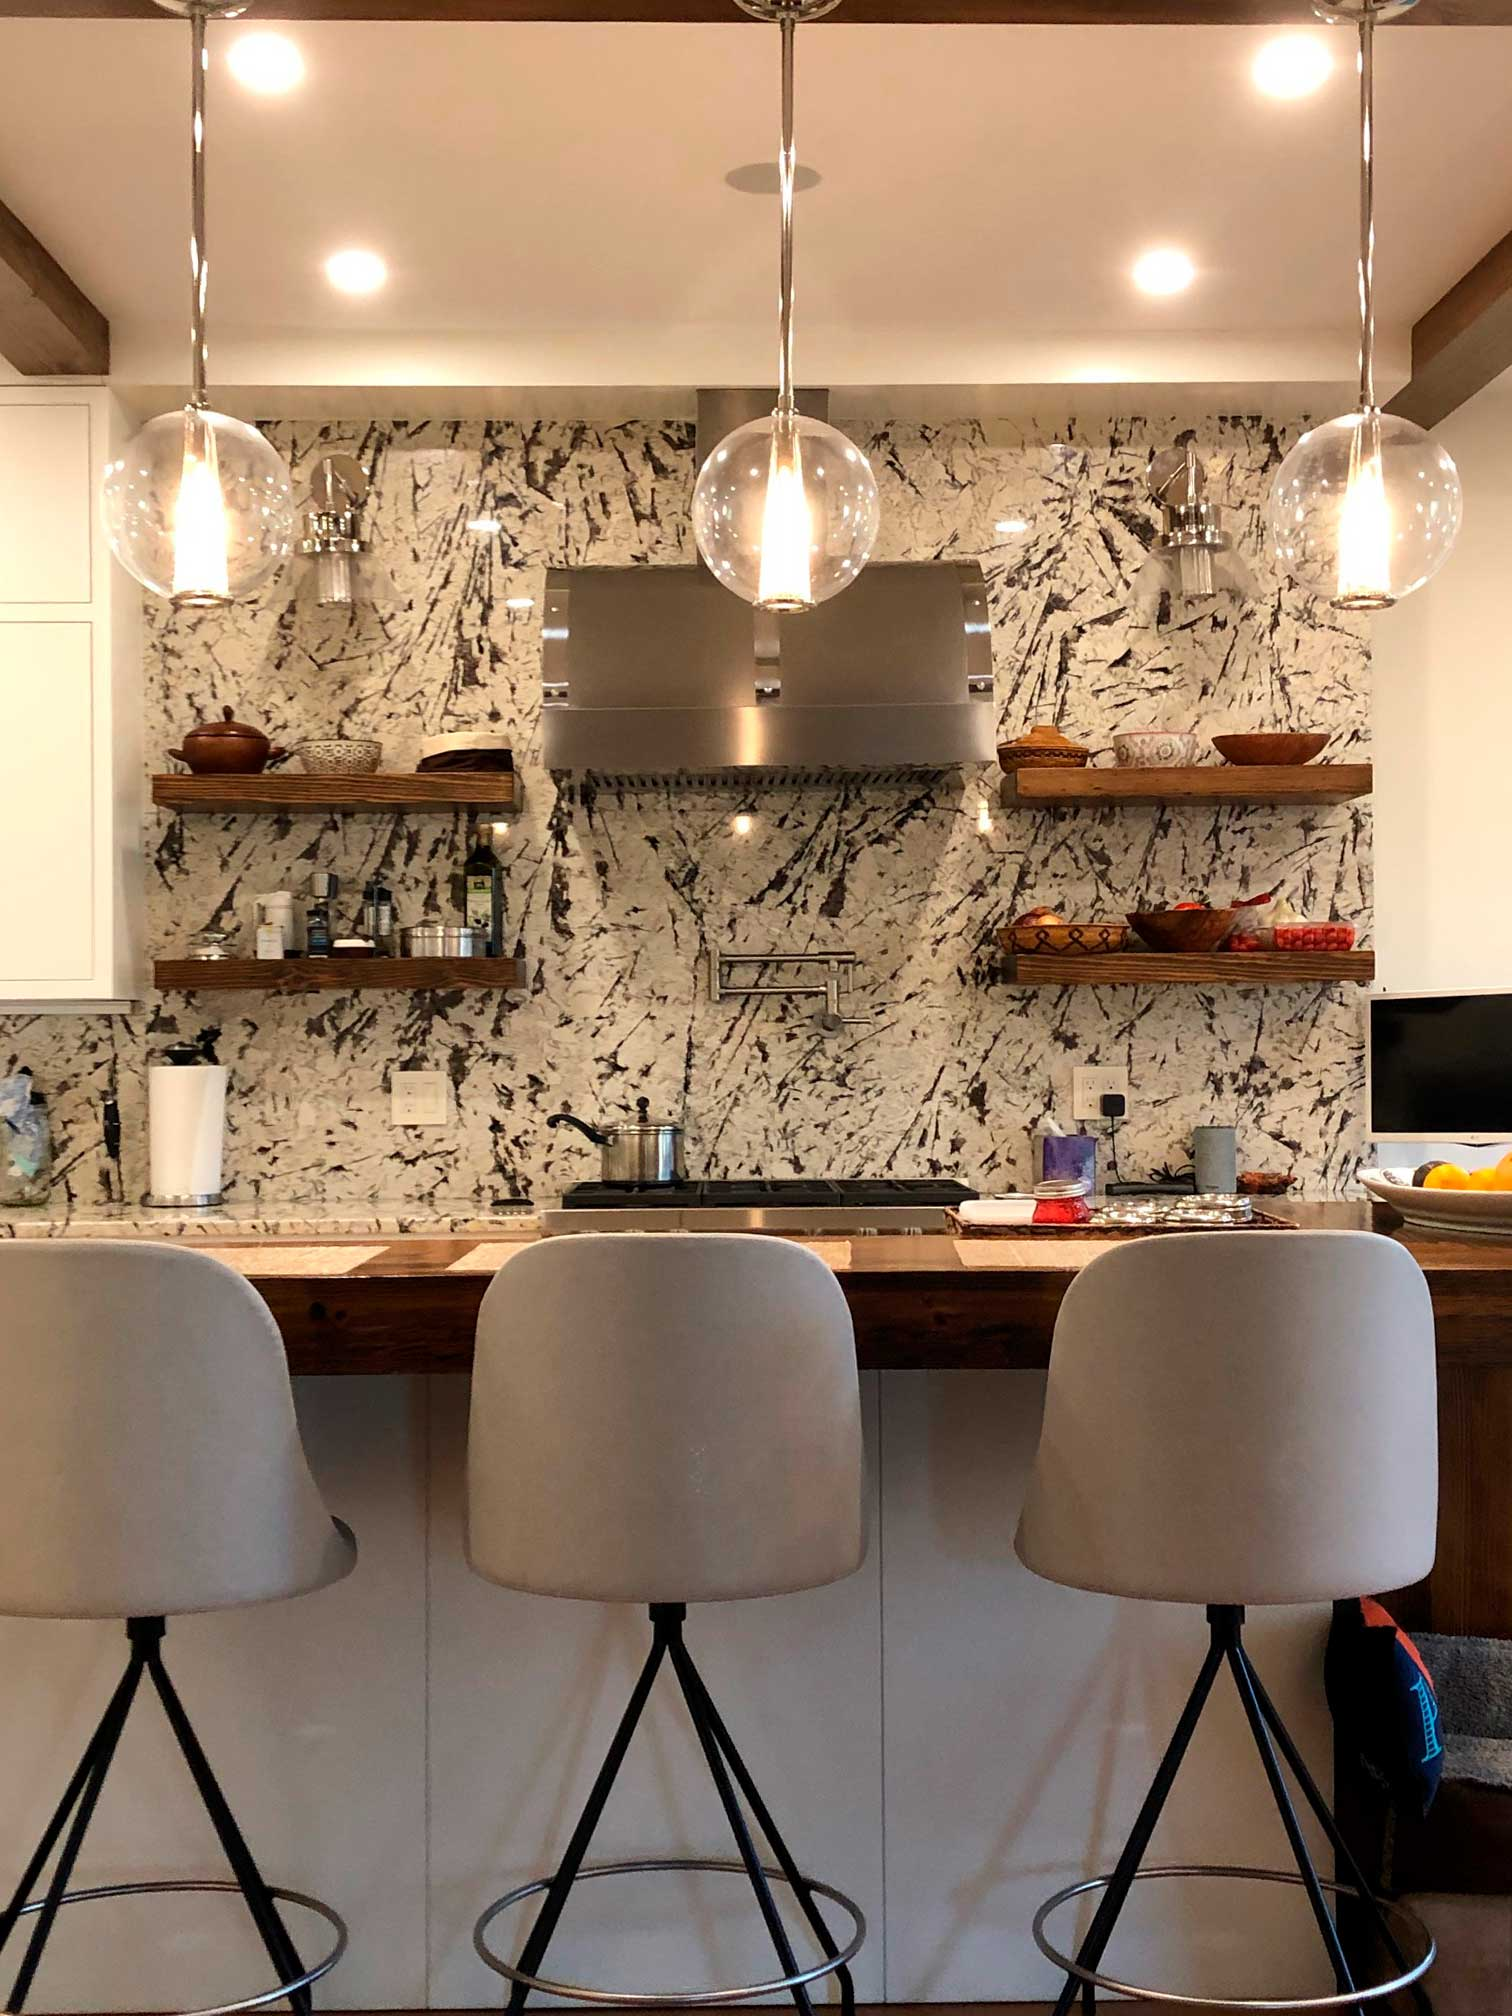 Kitchen remodeling - Chevy Chase MD